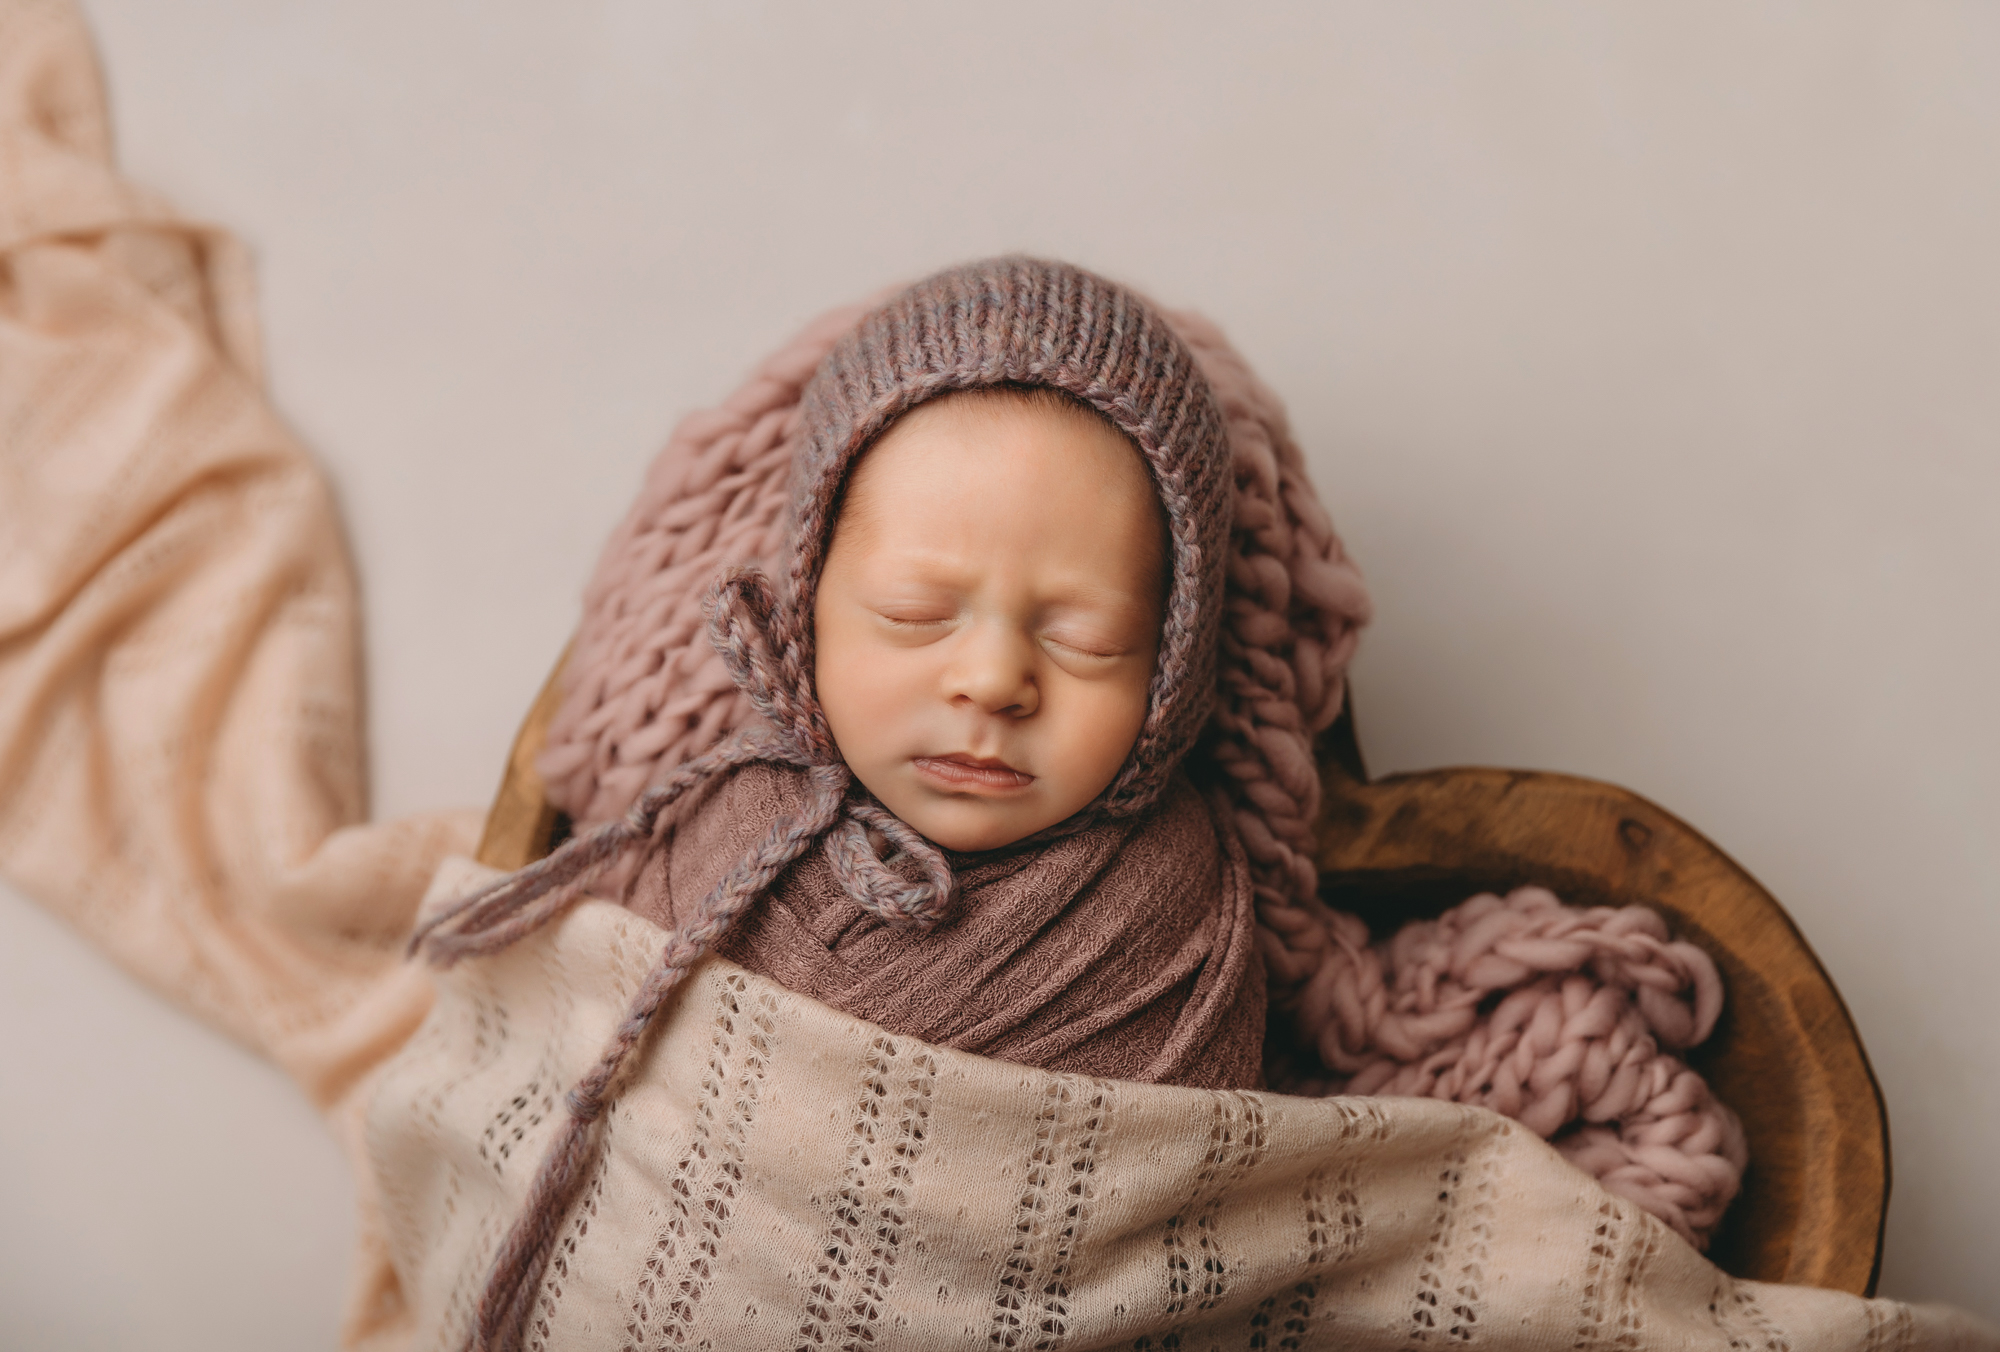 Newborn portrait of baby in pink wrap and bonnet in heart shaped bowl